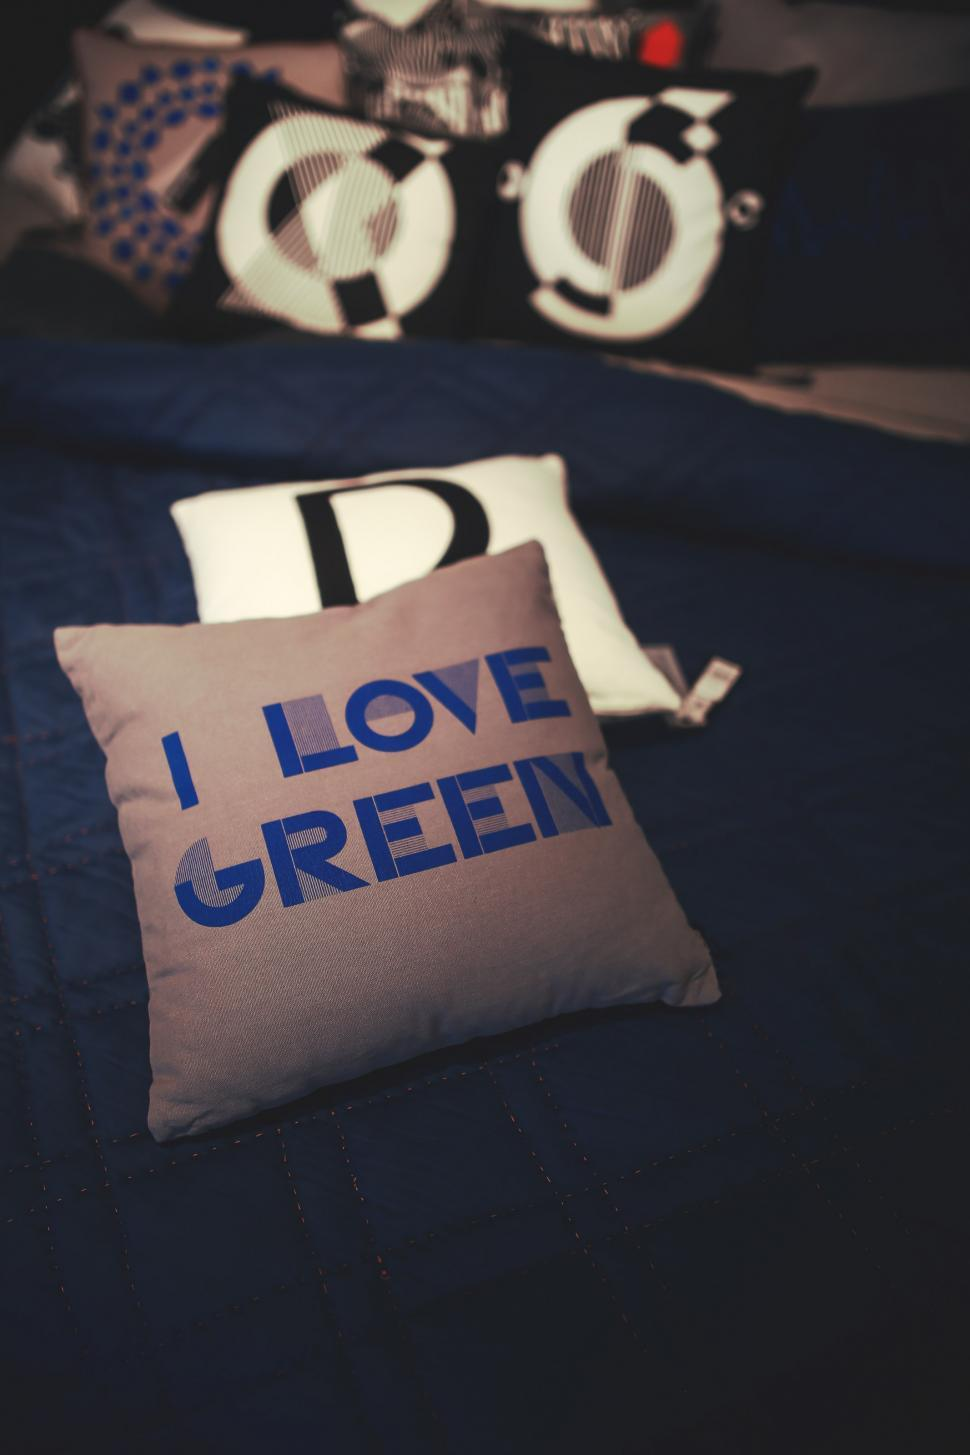 Download Free Stock Photo of Bed Blue Decor Decoration Gift Gray Green Interior Pillow design homeware love package packet money container currency cash paper bank finance wealth business